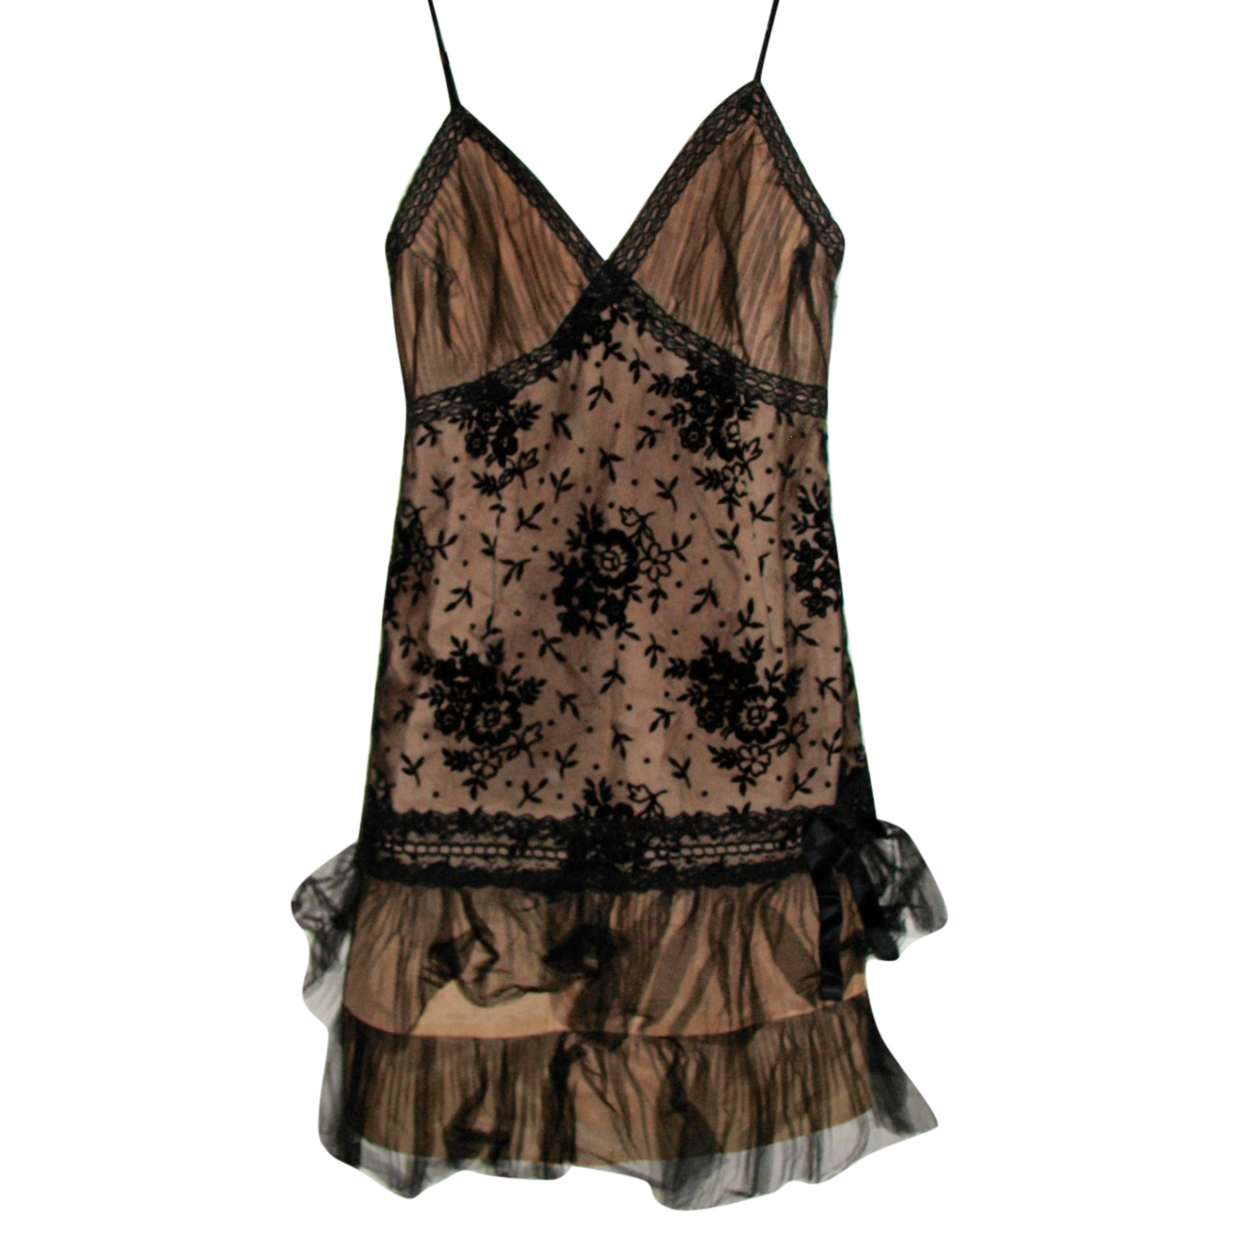 Anna Sui Bronze Satin & Black Lace Mini Dress